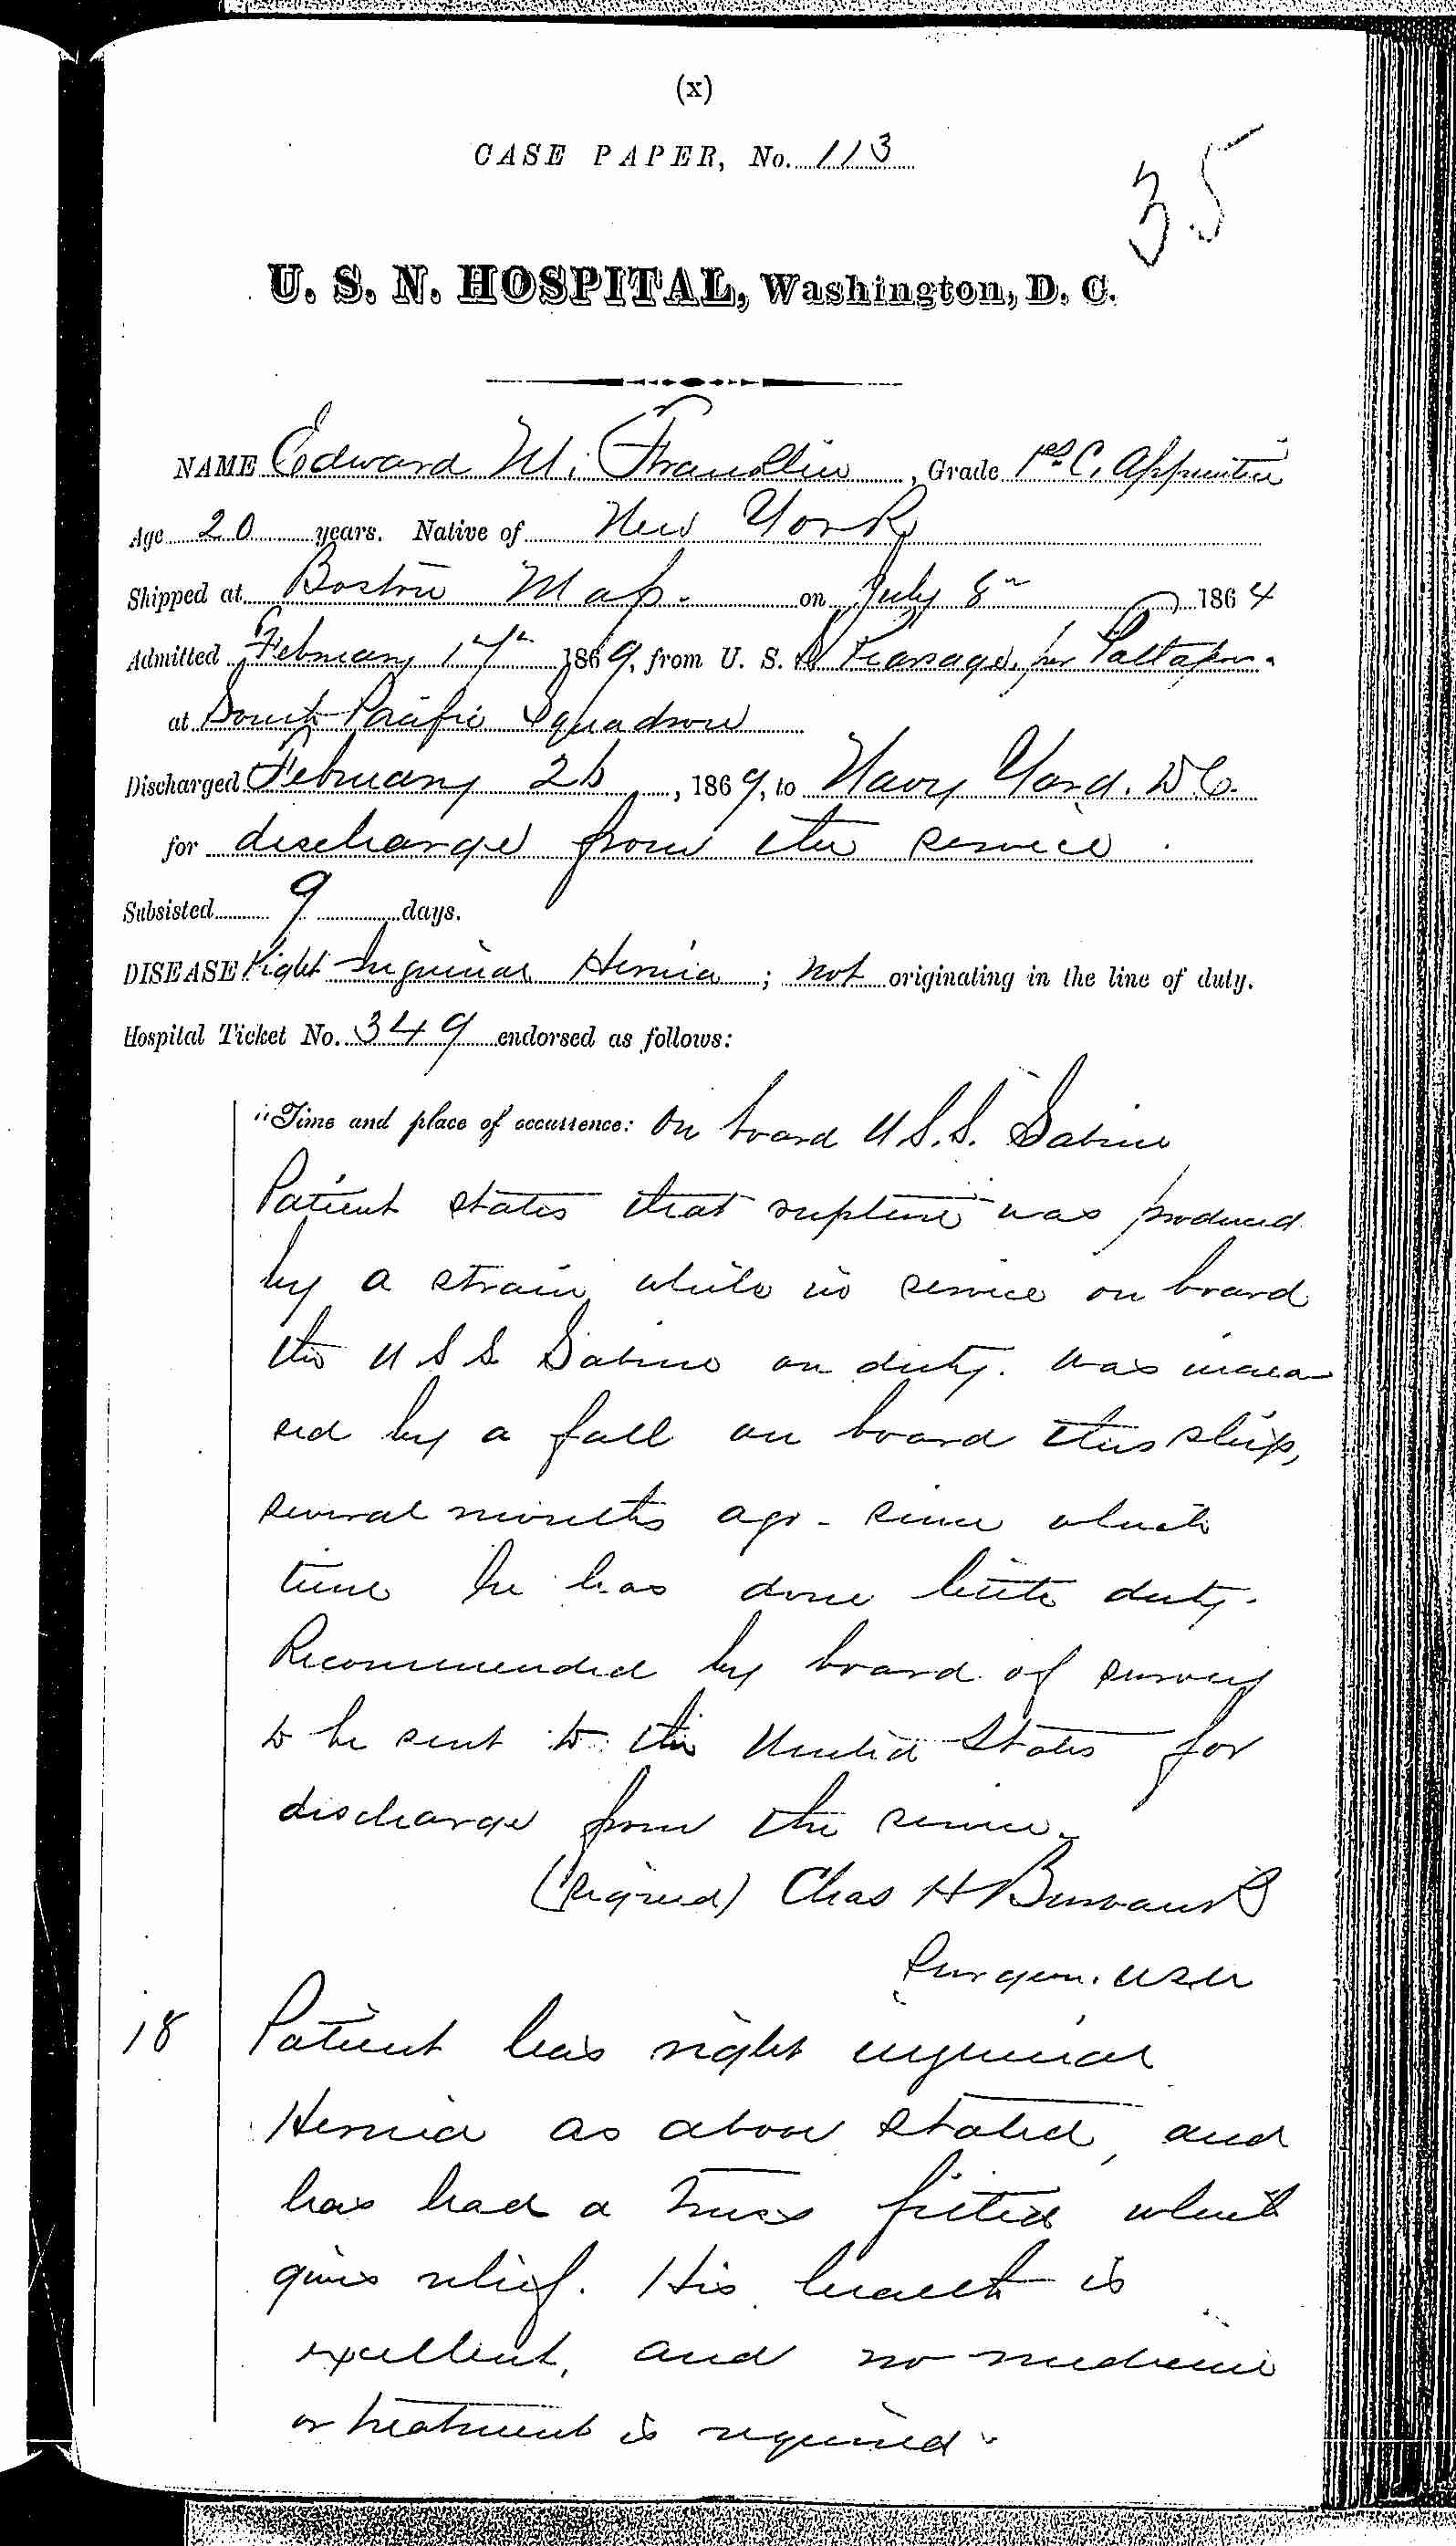 Entry for Edward W. Franklin (page 1 of 2) in the log Hospital Tickets and Case Papers - Naval Hospital - Washington, D.C. - 1868-69